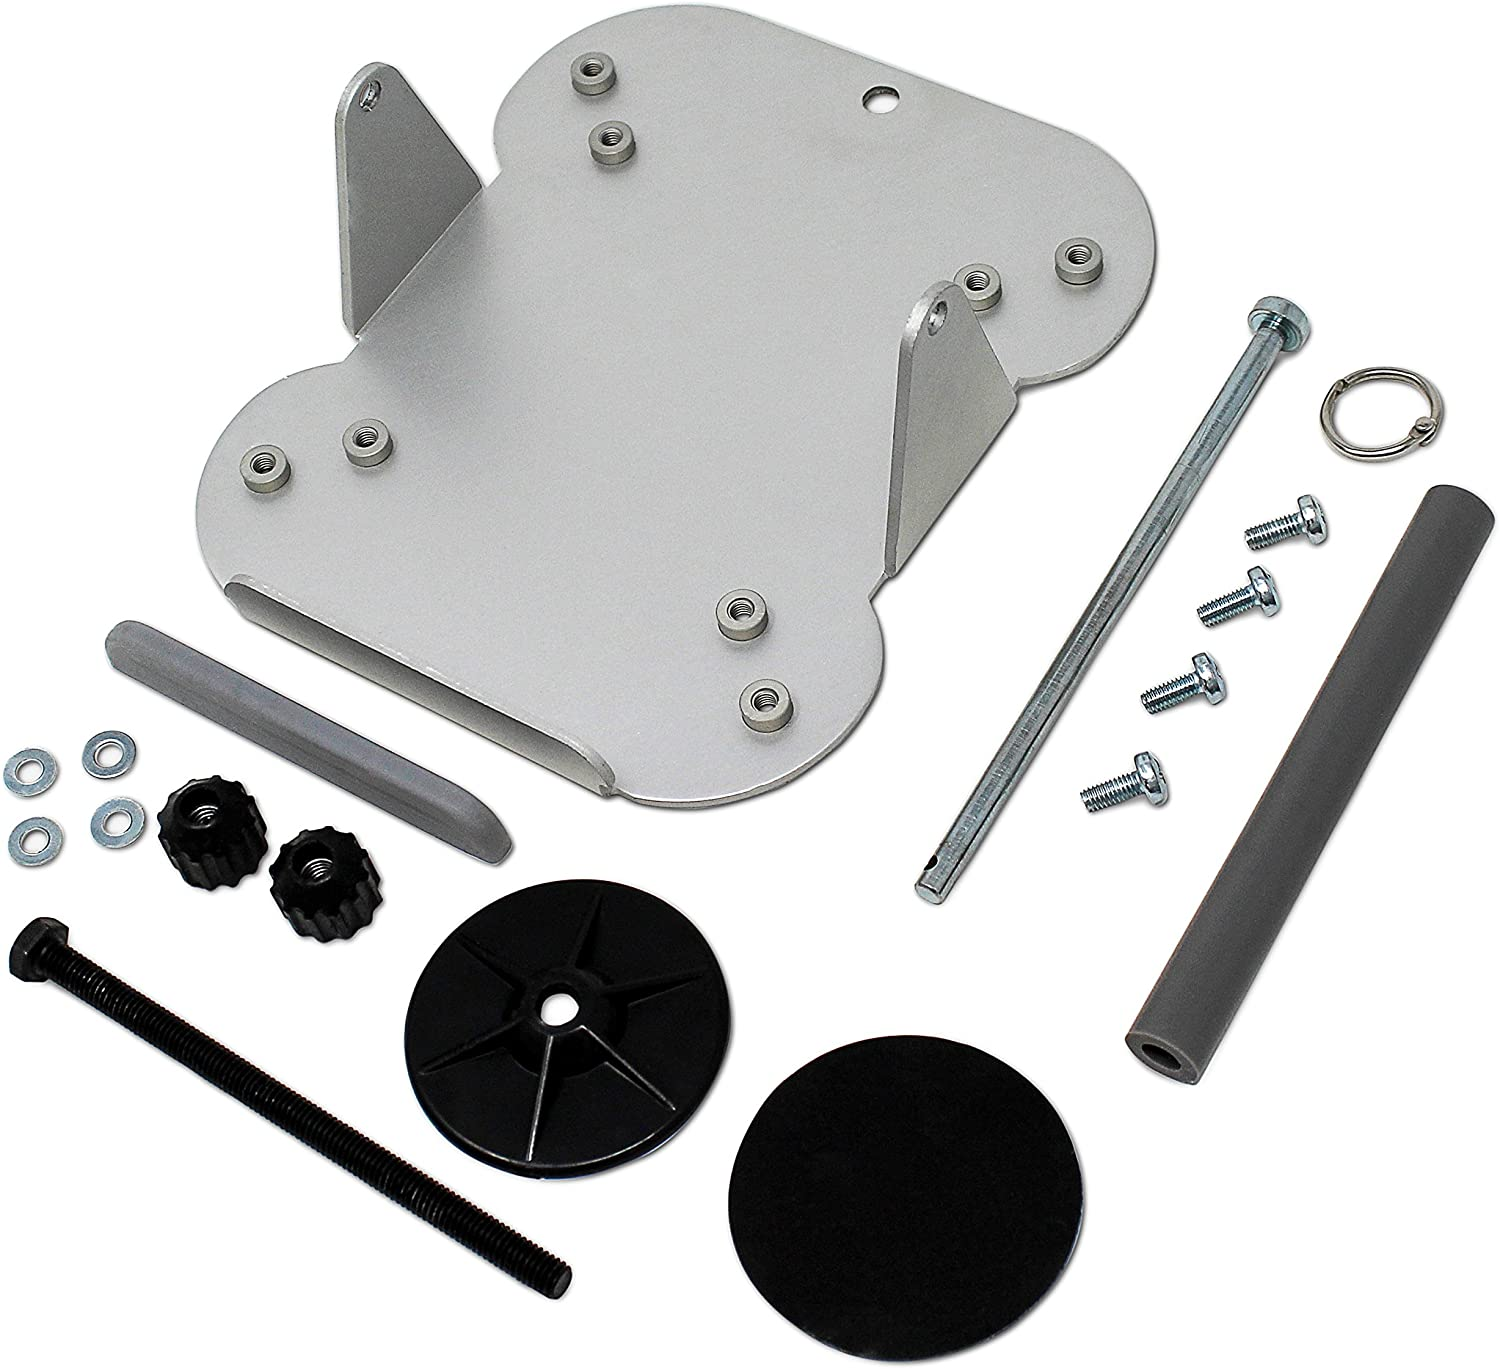 VESA Mounting Adapter Kit for All Apple iMacs with Non-Removable Stands | Late-2011 to Current Models | Patented - by HumanCentric